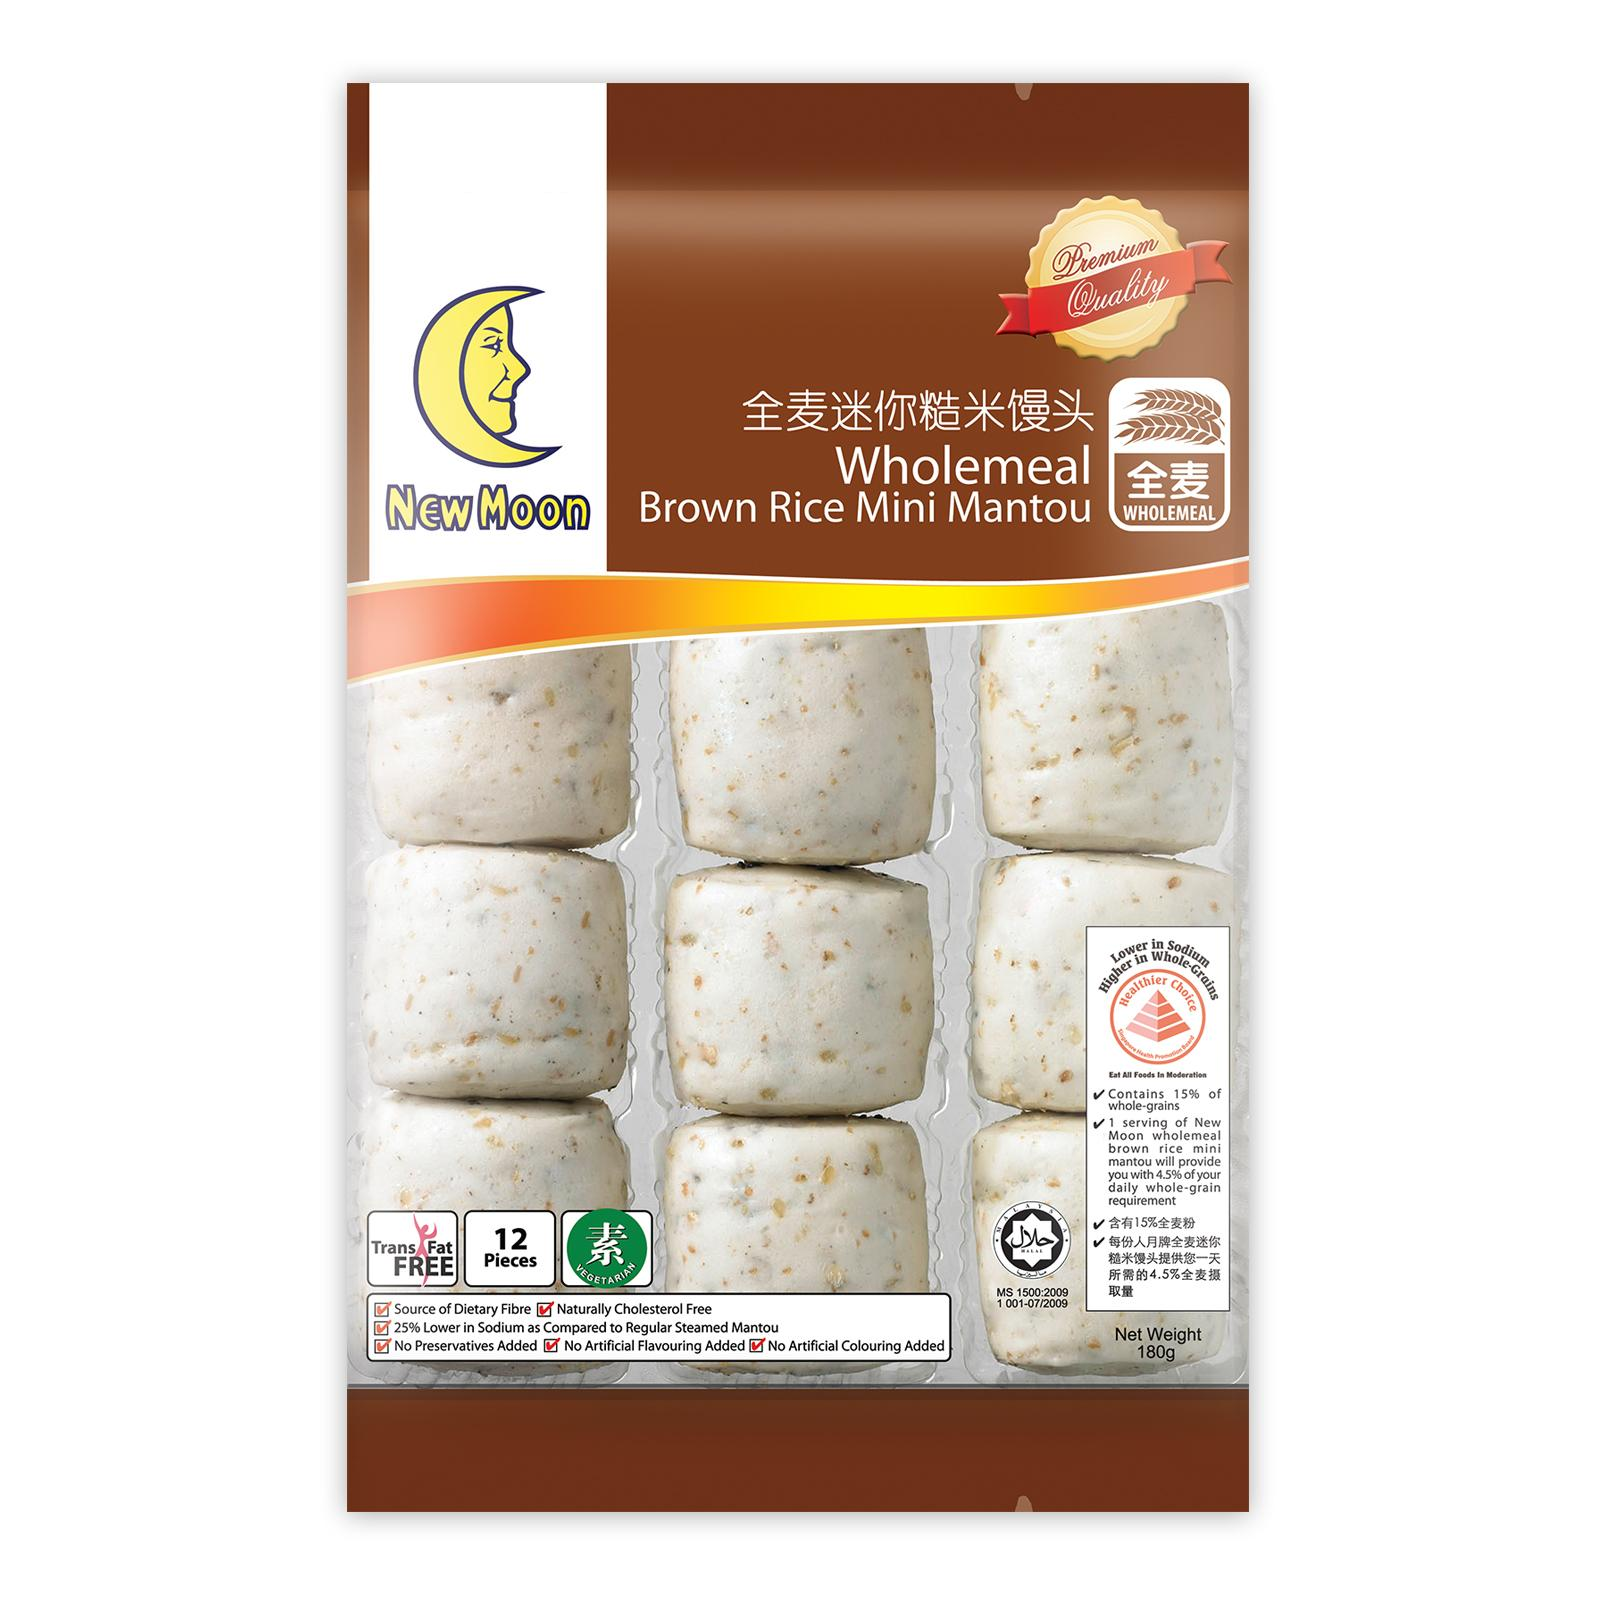 New Moon Wholemeal Brown Rice Mini Mantou - Frozen By Redmart.